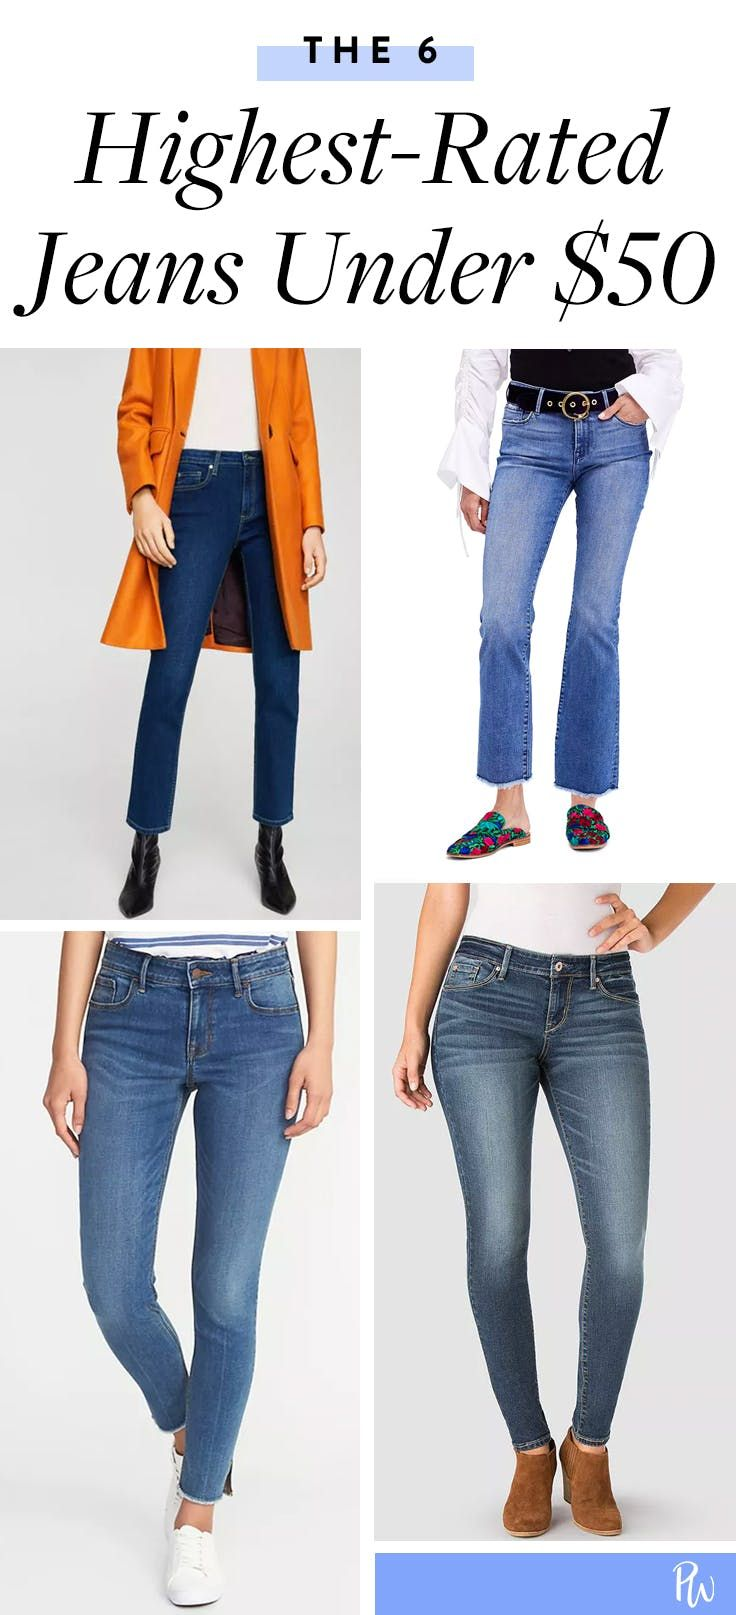 ee787861c8f The 6 Highest Rated Jeans Under $50 | Closet Fantasies | Fall jeans ...